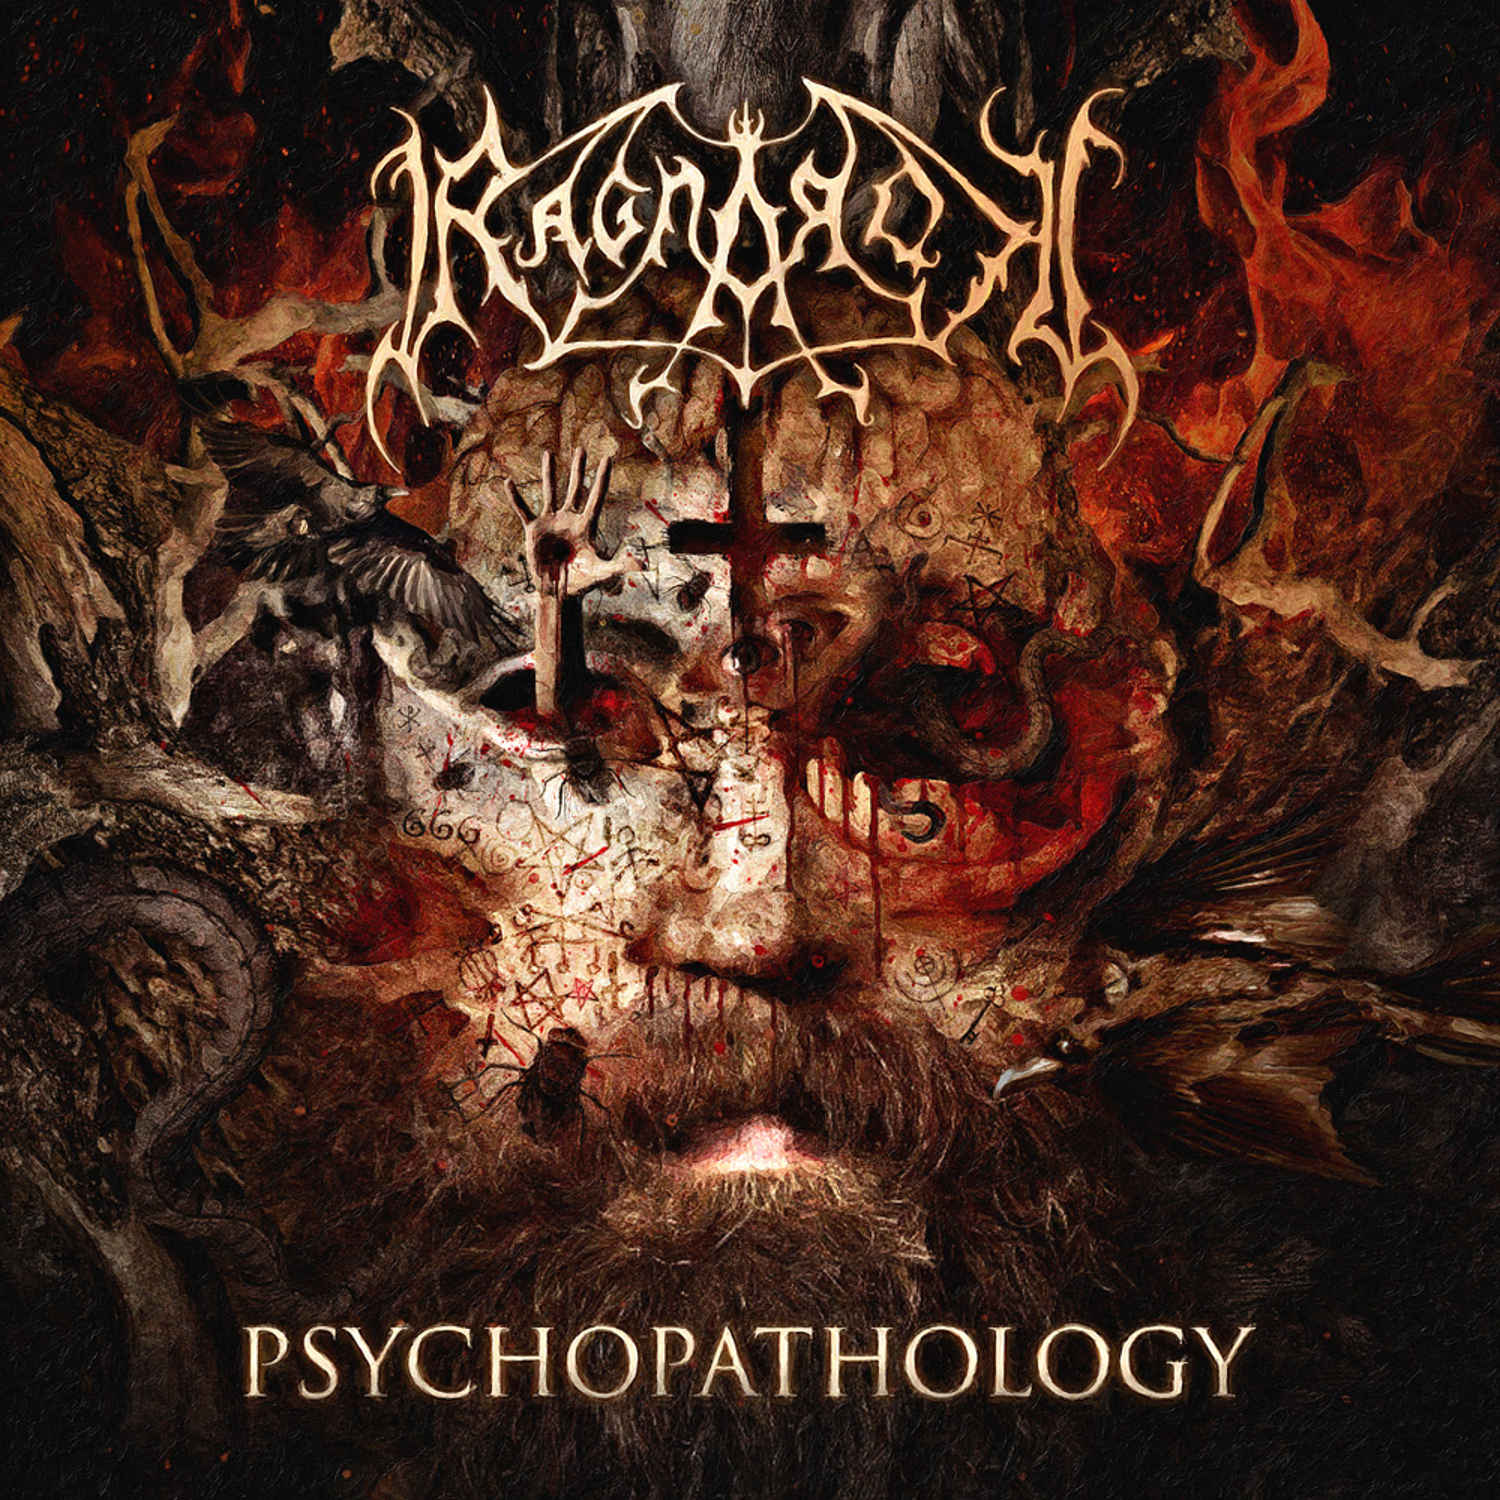 RAGNAROKPSYCHOPATHOLOGY